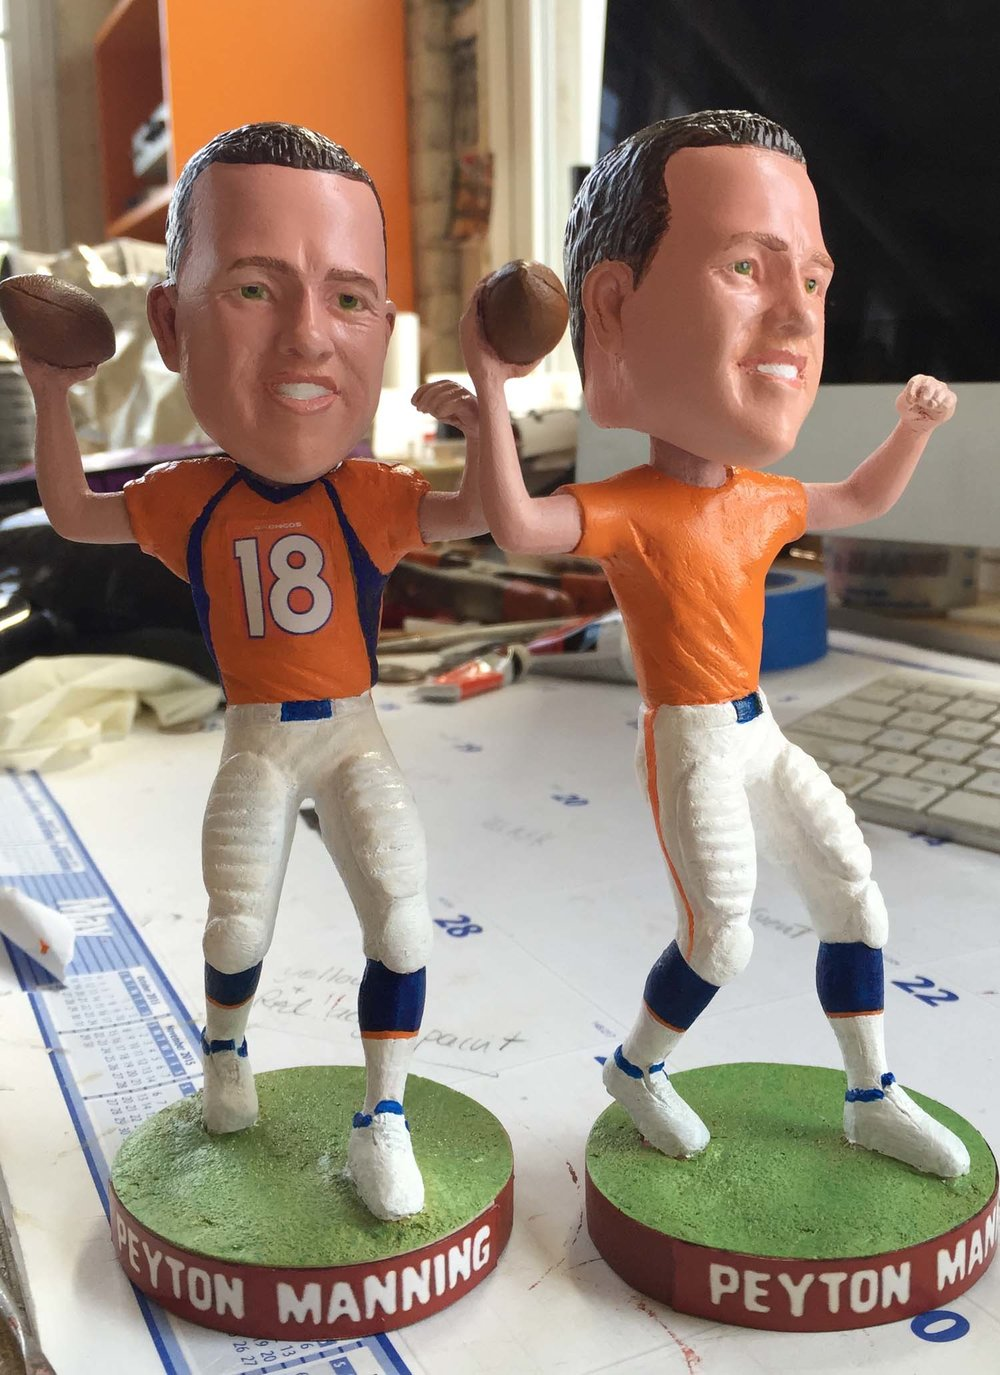 Peyton Manning bobble head